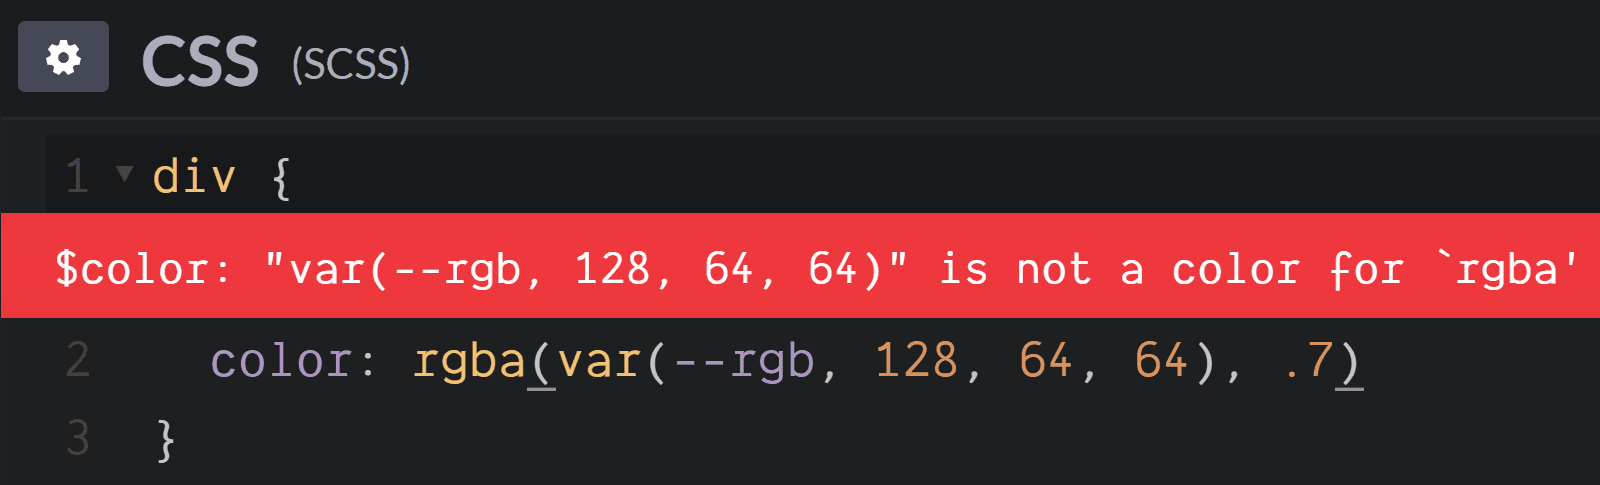 Screenshot. Shows the `$color: 'var(--rgb, 128, 64, 64)' is not a color for 'rgba'` error when trying to set `color: rgba(var(--rgb, 128, 64, 64), .7)`.